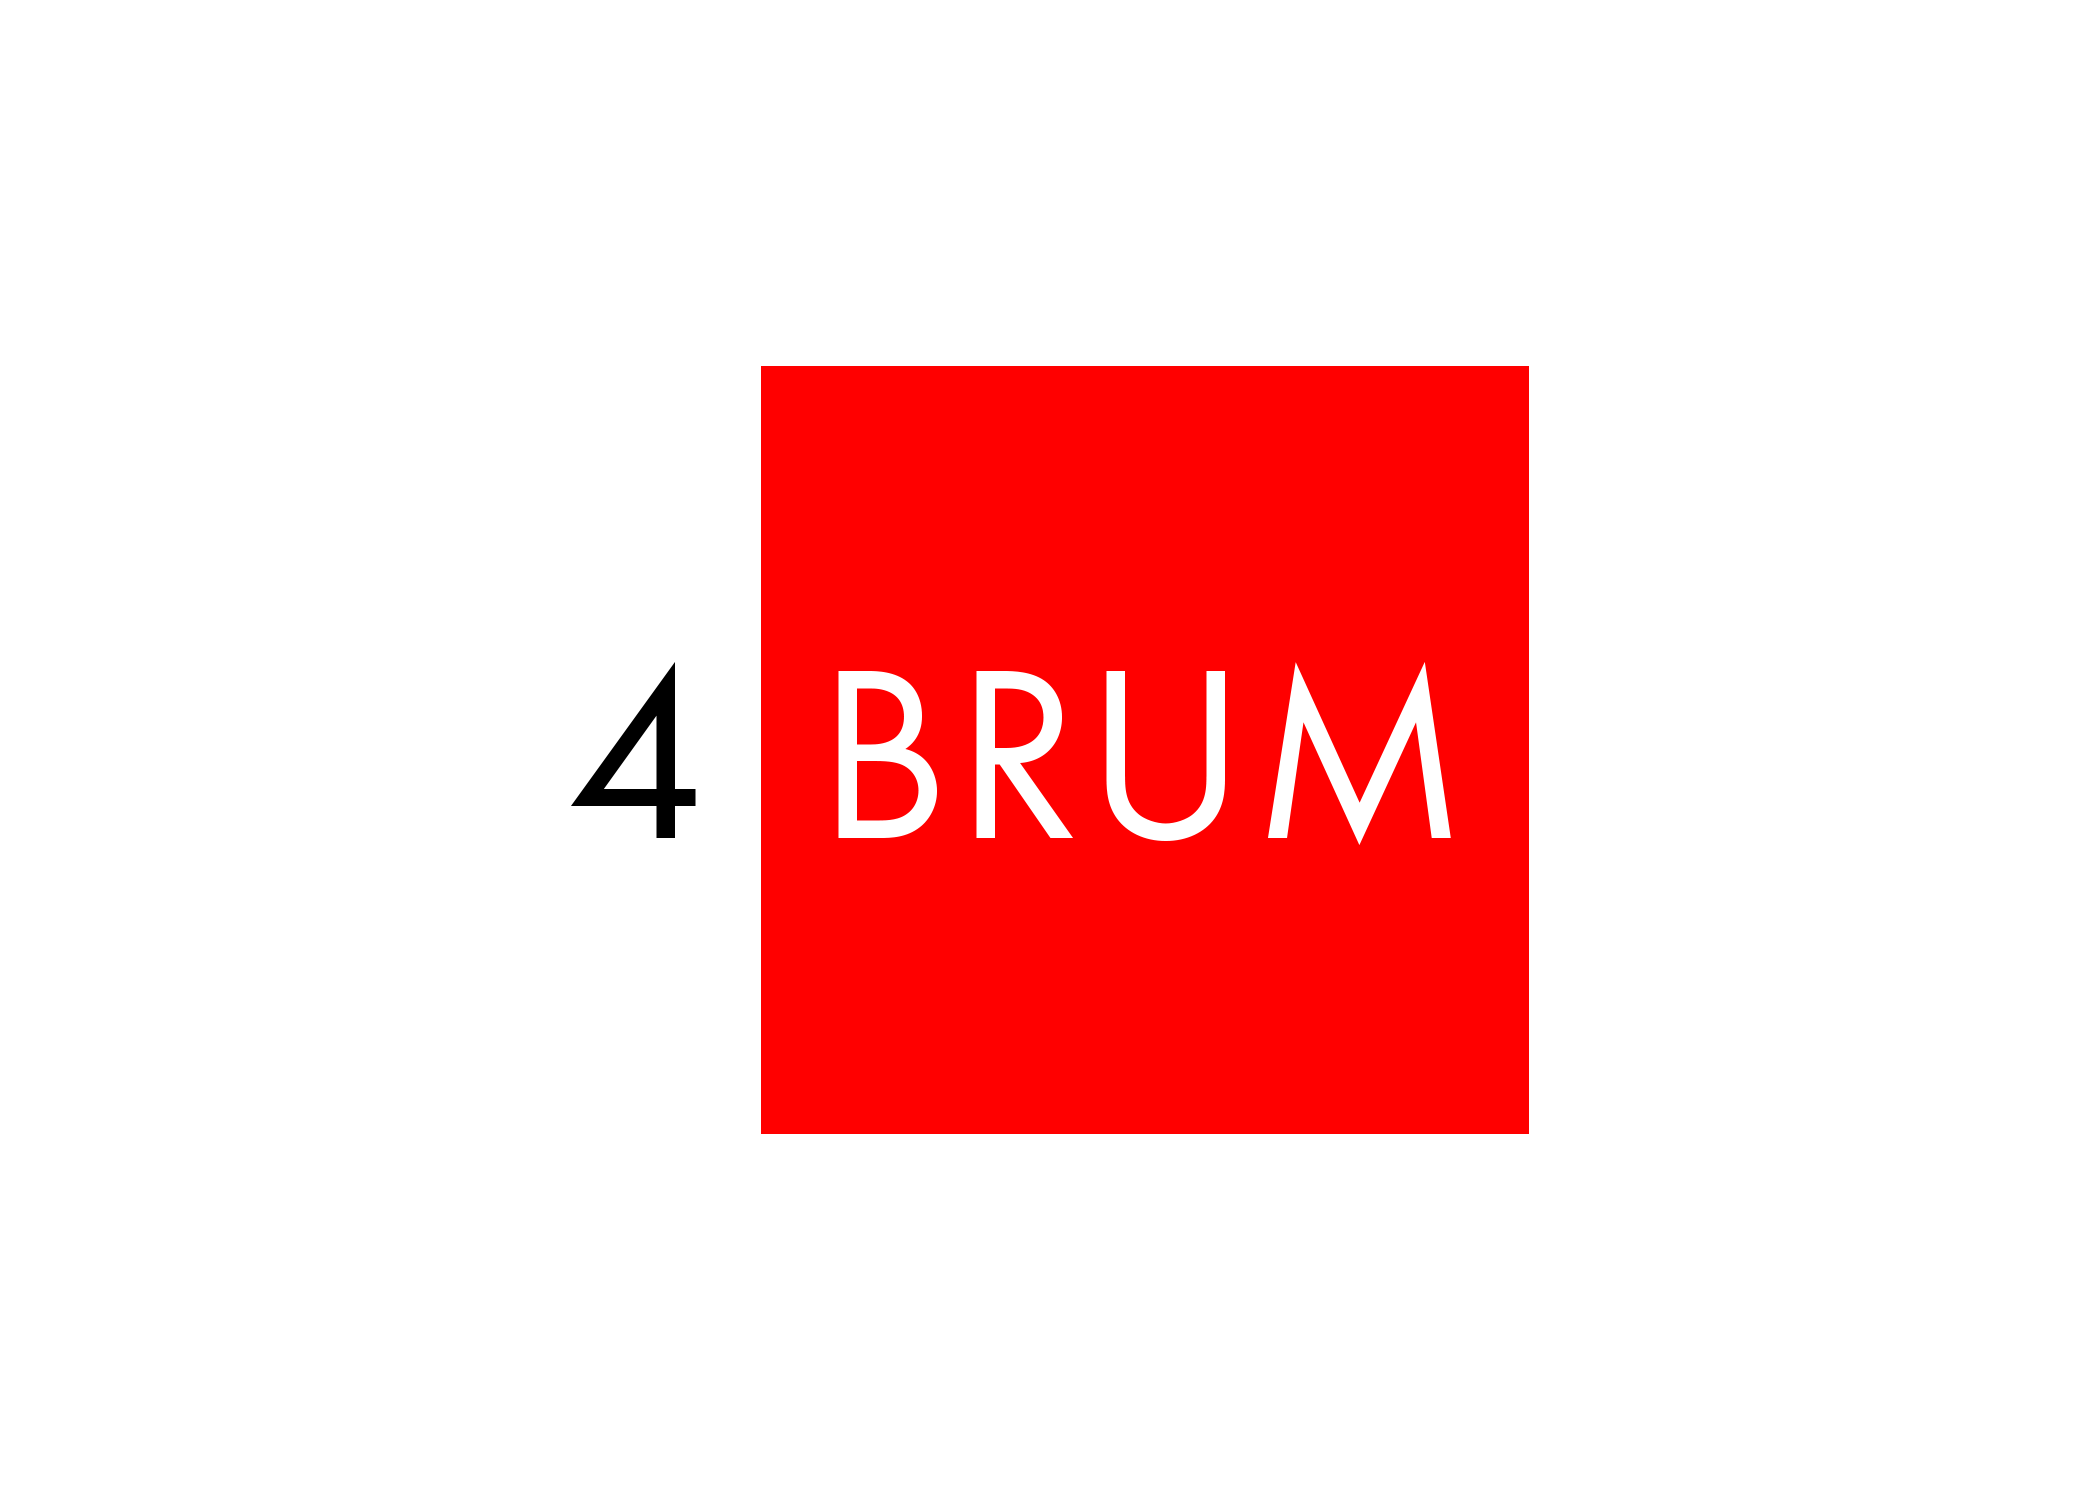 4Brum - Operates as two entities in symbiosis4Brum TV & 4Brum Music 4Brum TV is a team of Film-makers creating high quality short films and providing high quality video production for creatives4Brum Music is a collective and record label run by artists with the mission of empowering local talent and allowing them to have creative freedom